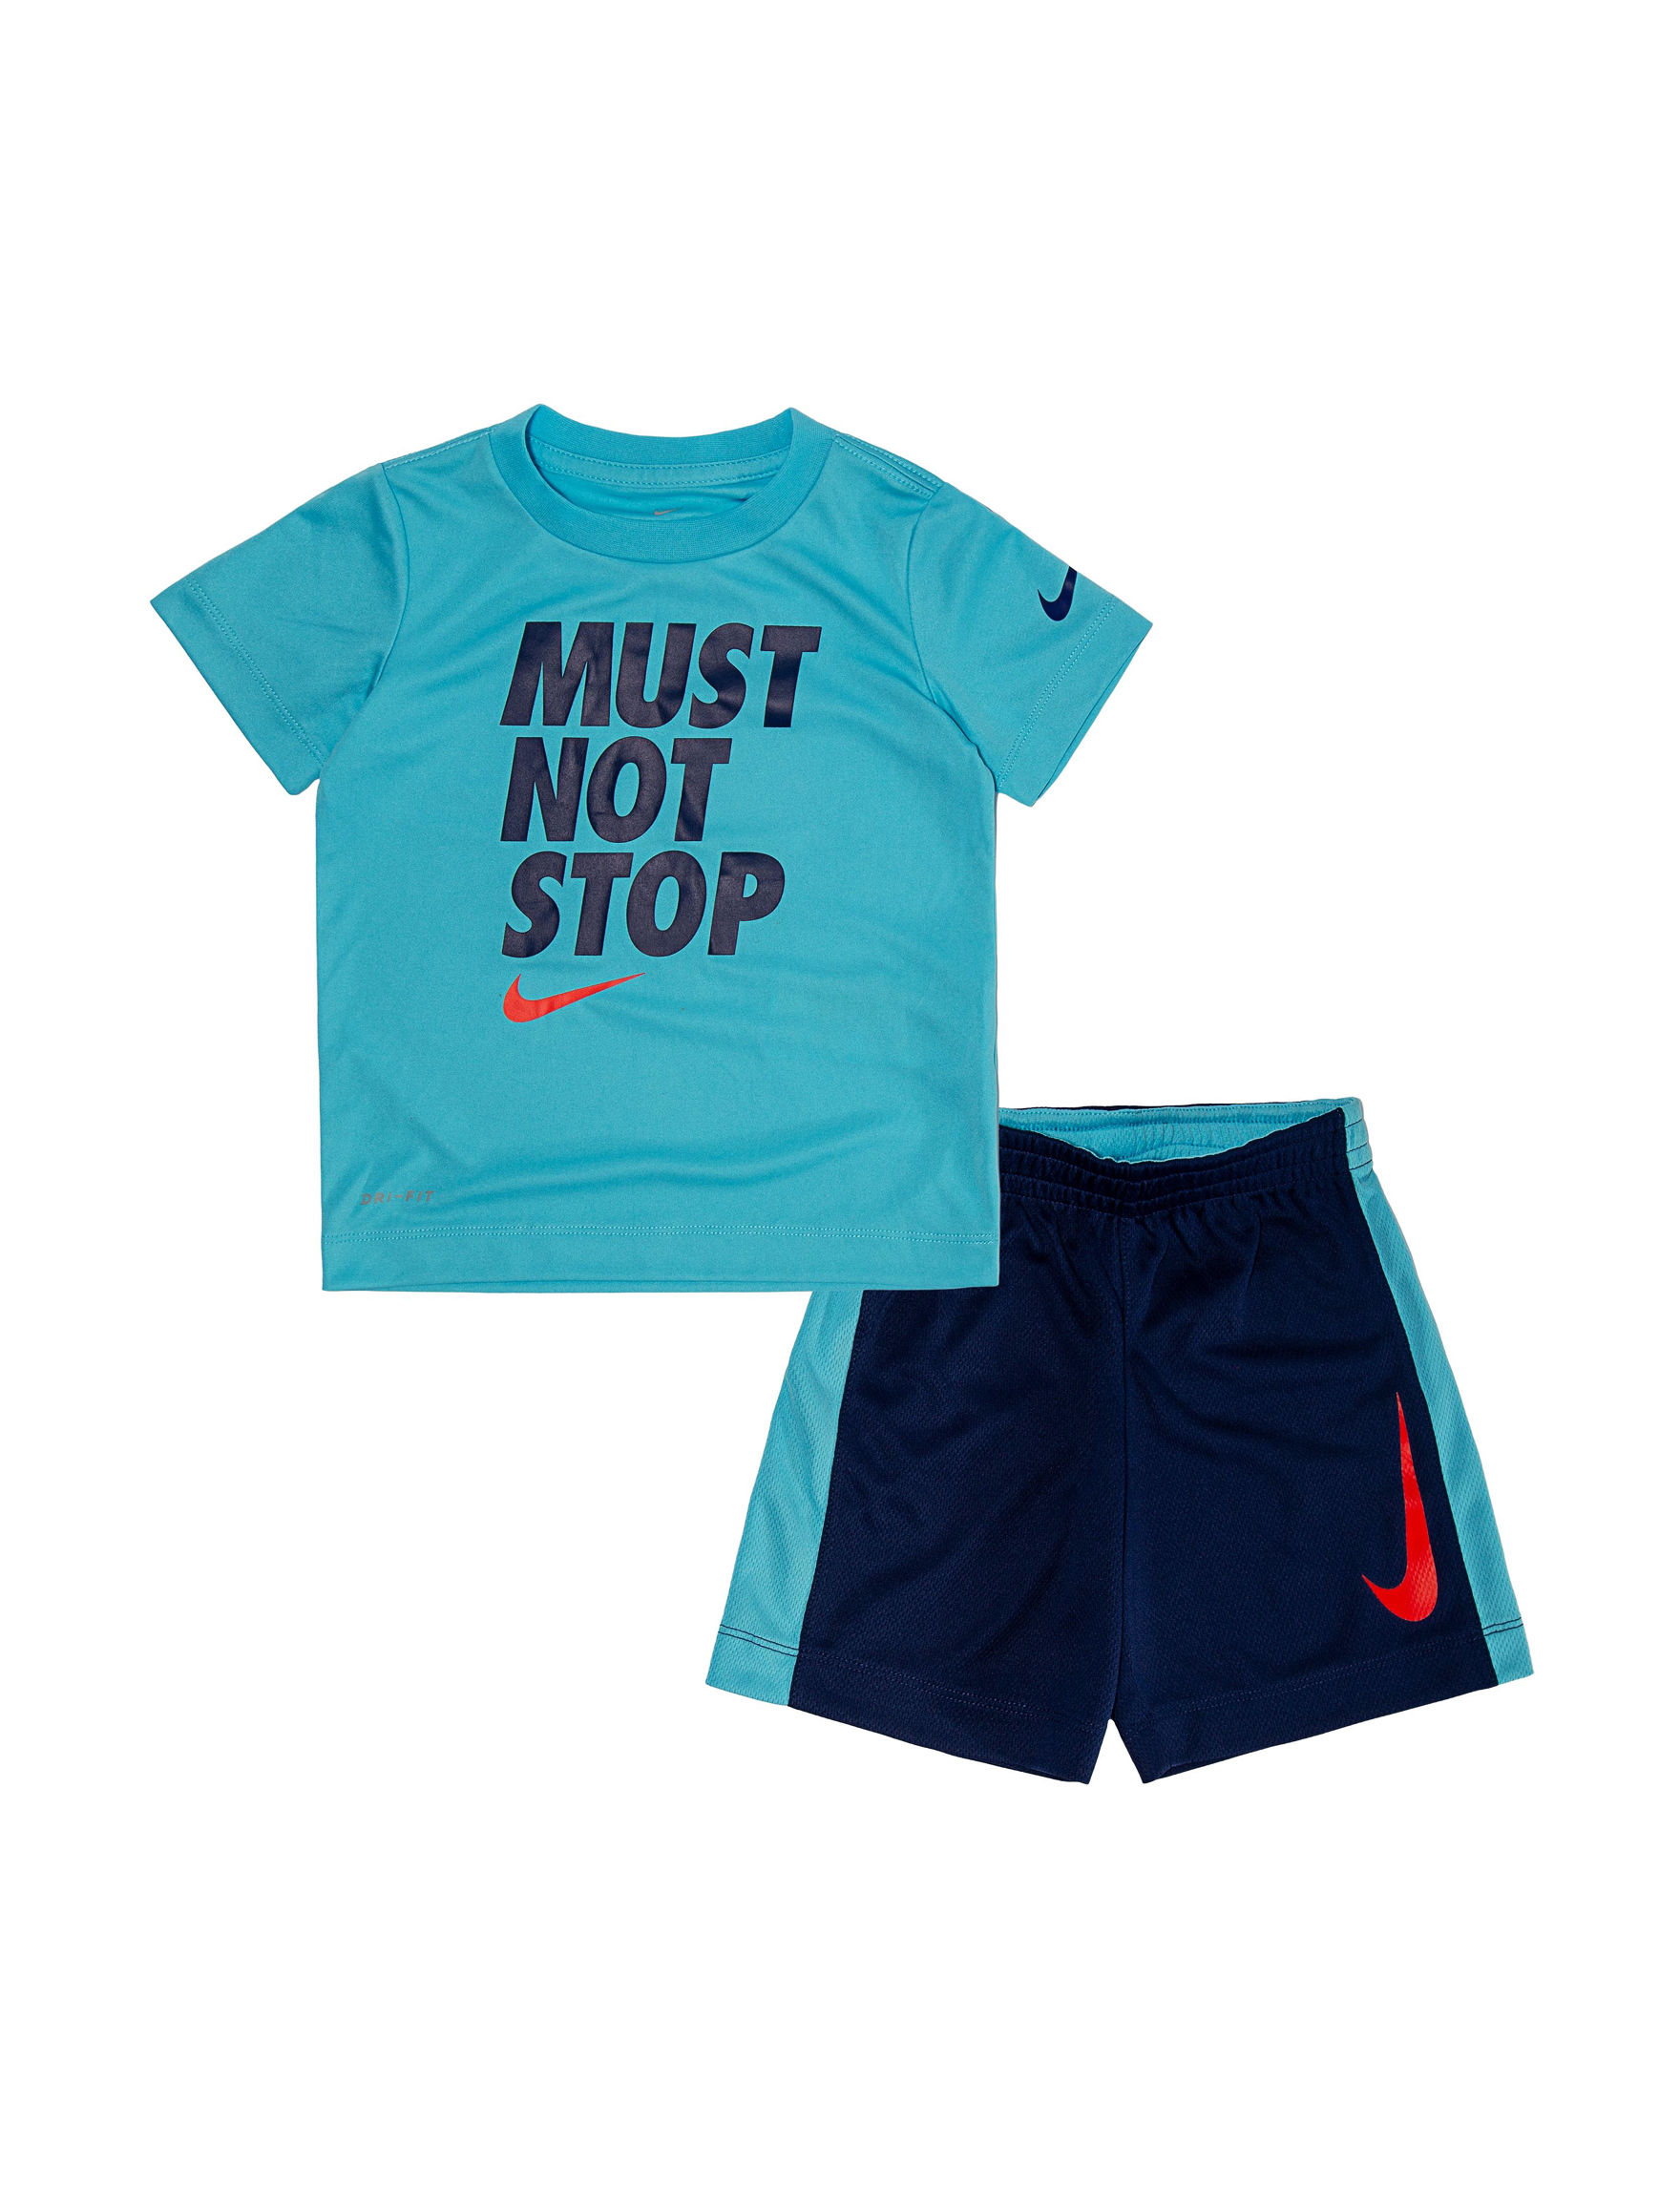 60a8b62d4690 Nike 2-pc. Dri-FIT Must Not Stop T-shirt & Shorts Set - Baby 12-24 Mos.